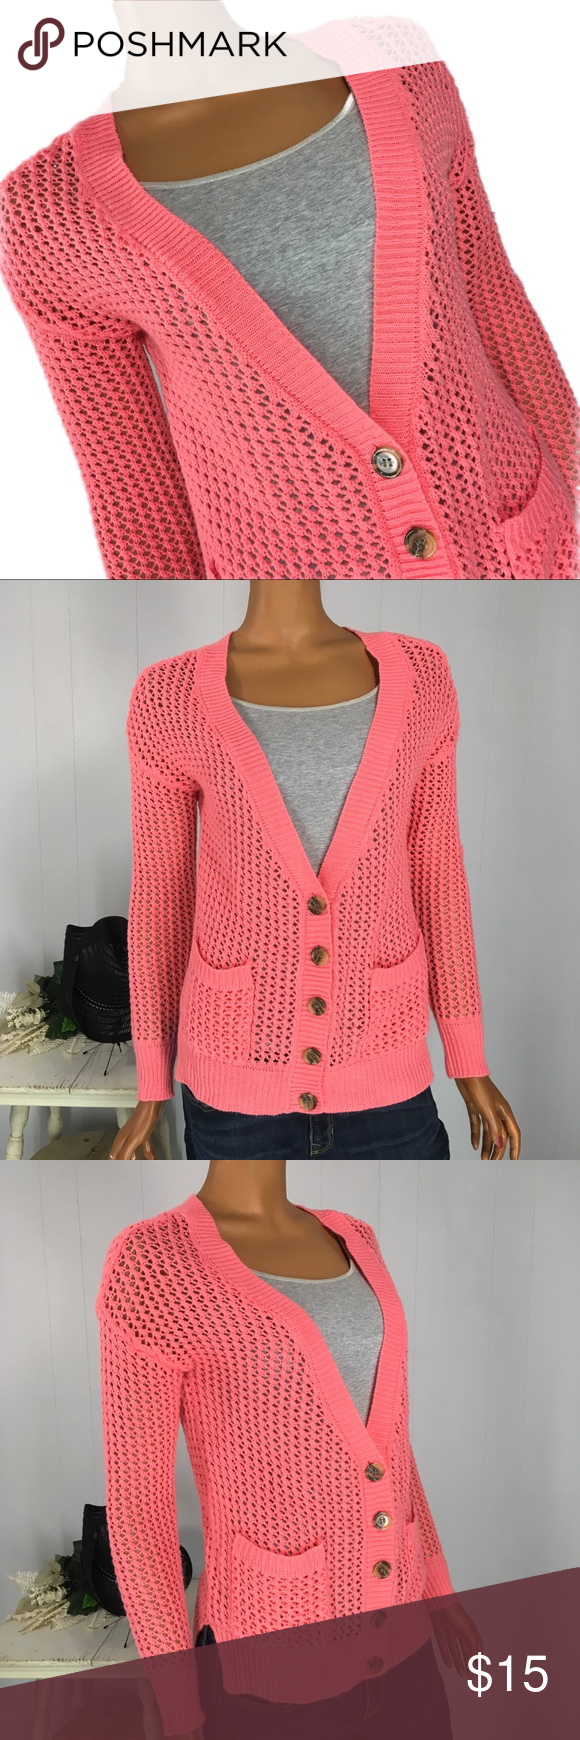 Sweater Project Pink Coral V Neck Open Weave L (With ...